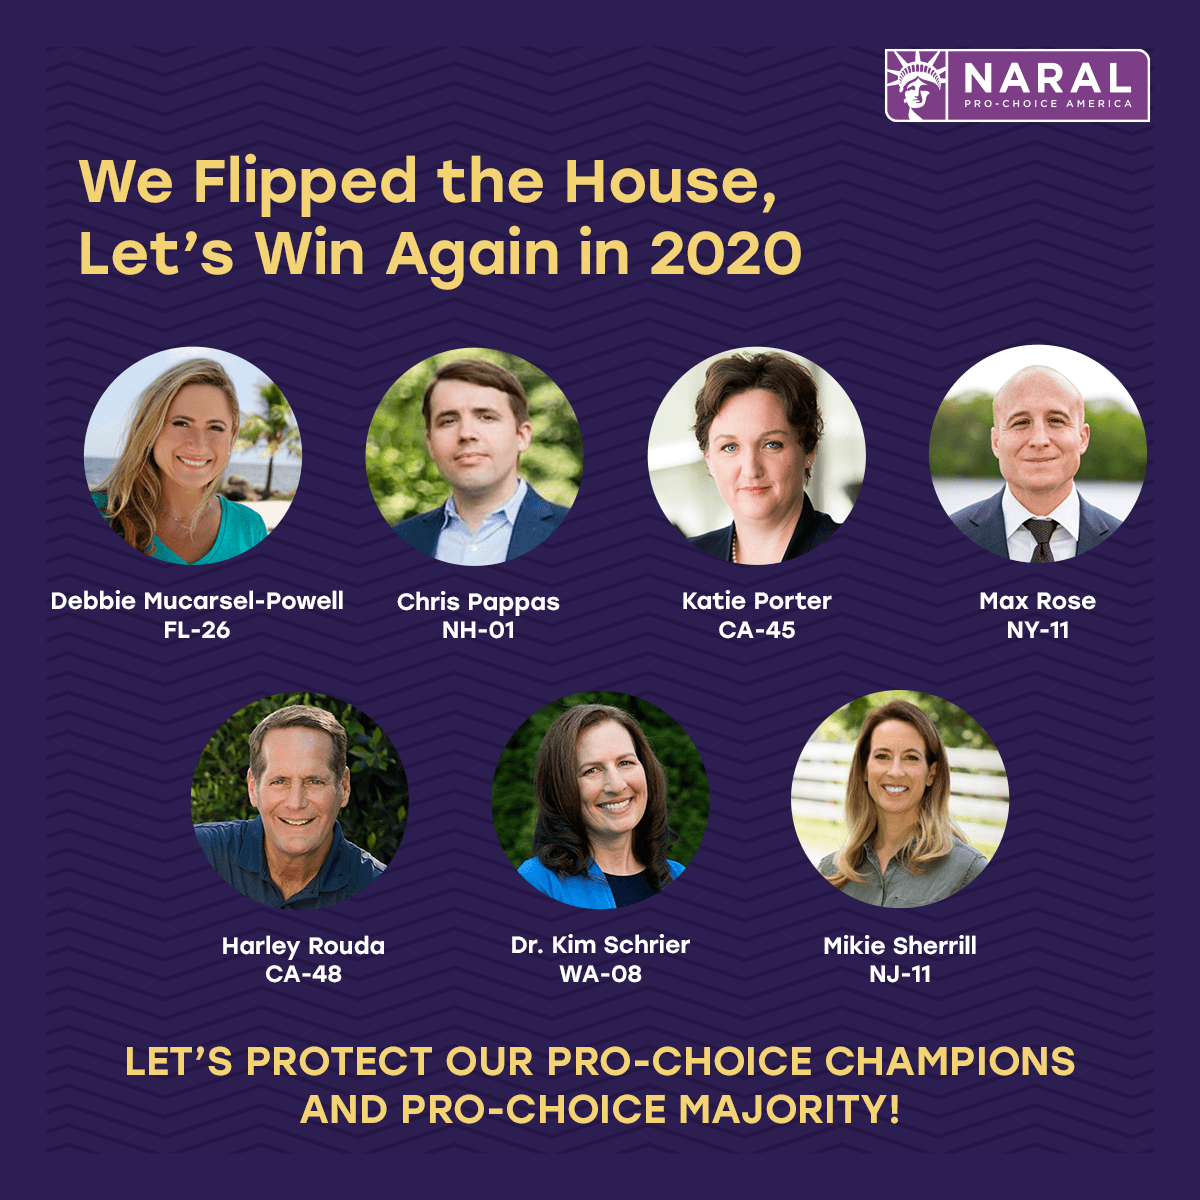 We're thrilled to be going to bat again for our newly-elected, pro-choice champions in the House!